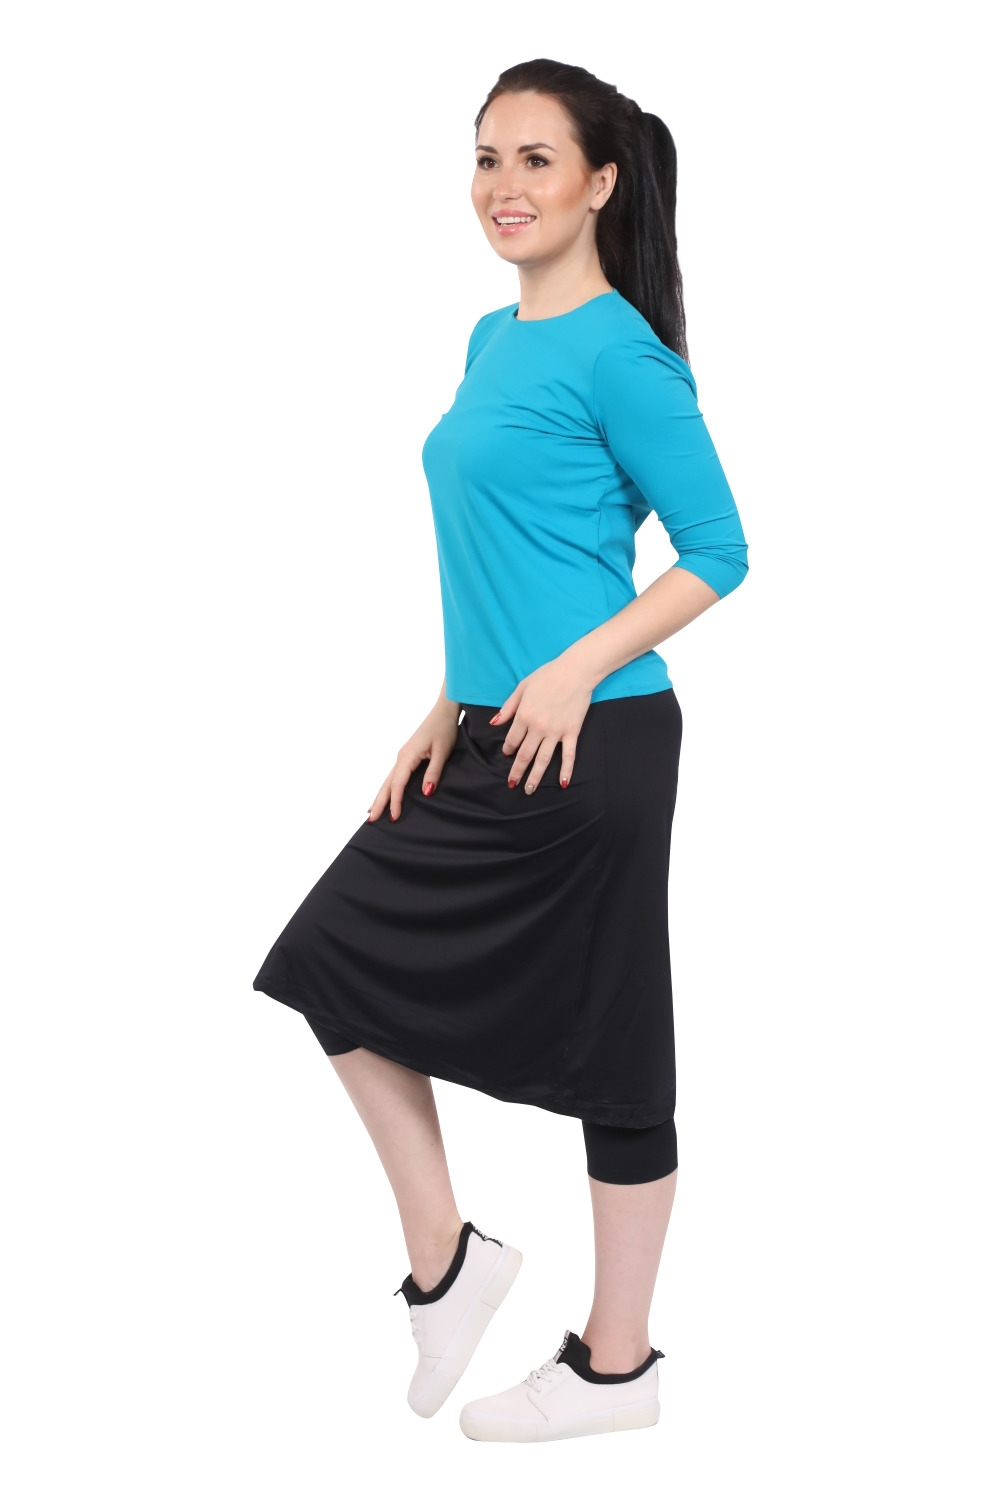 WOMENS RUNNING SPORTS SKIRT / SWIM SKIRT WITH LEGGINGS